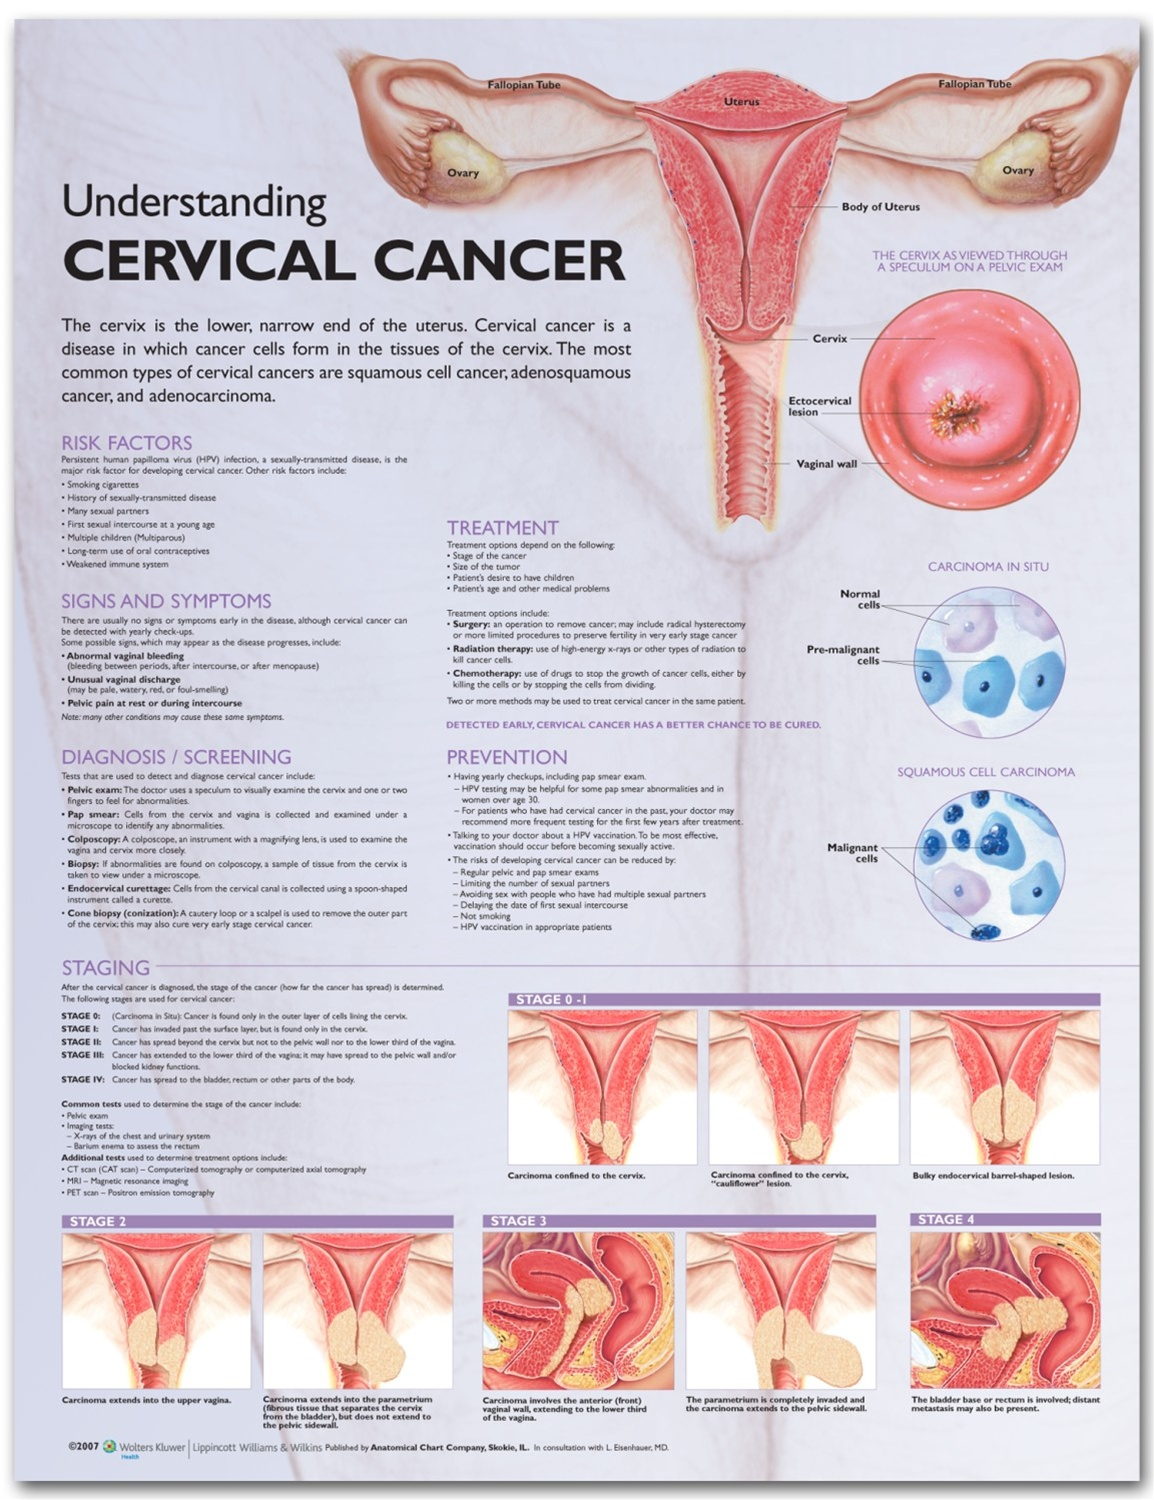 Understanding Cervical Cancer Anatomical Chart - Anatomy Models and ...